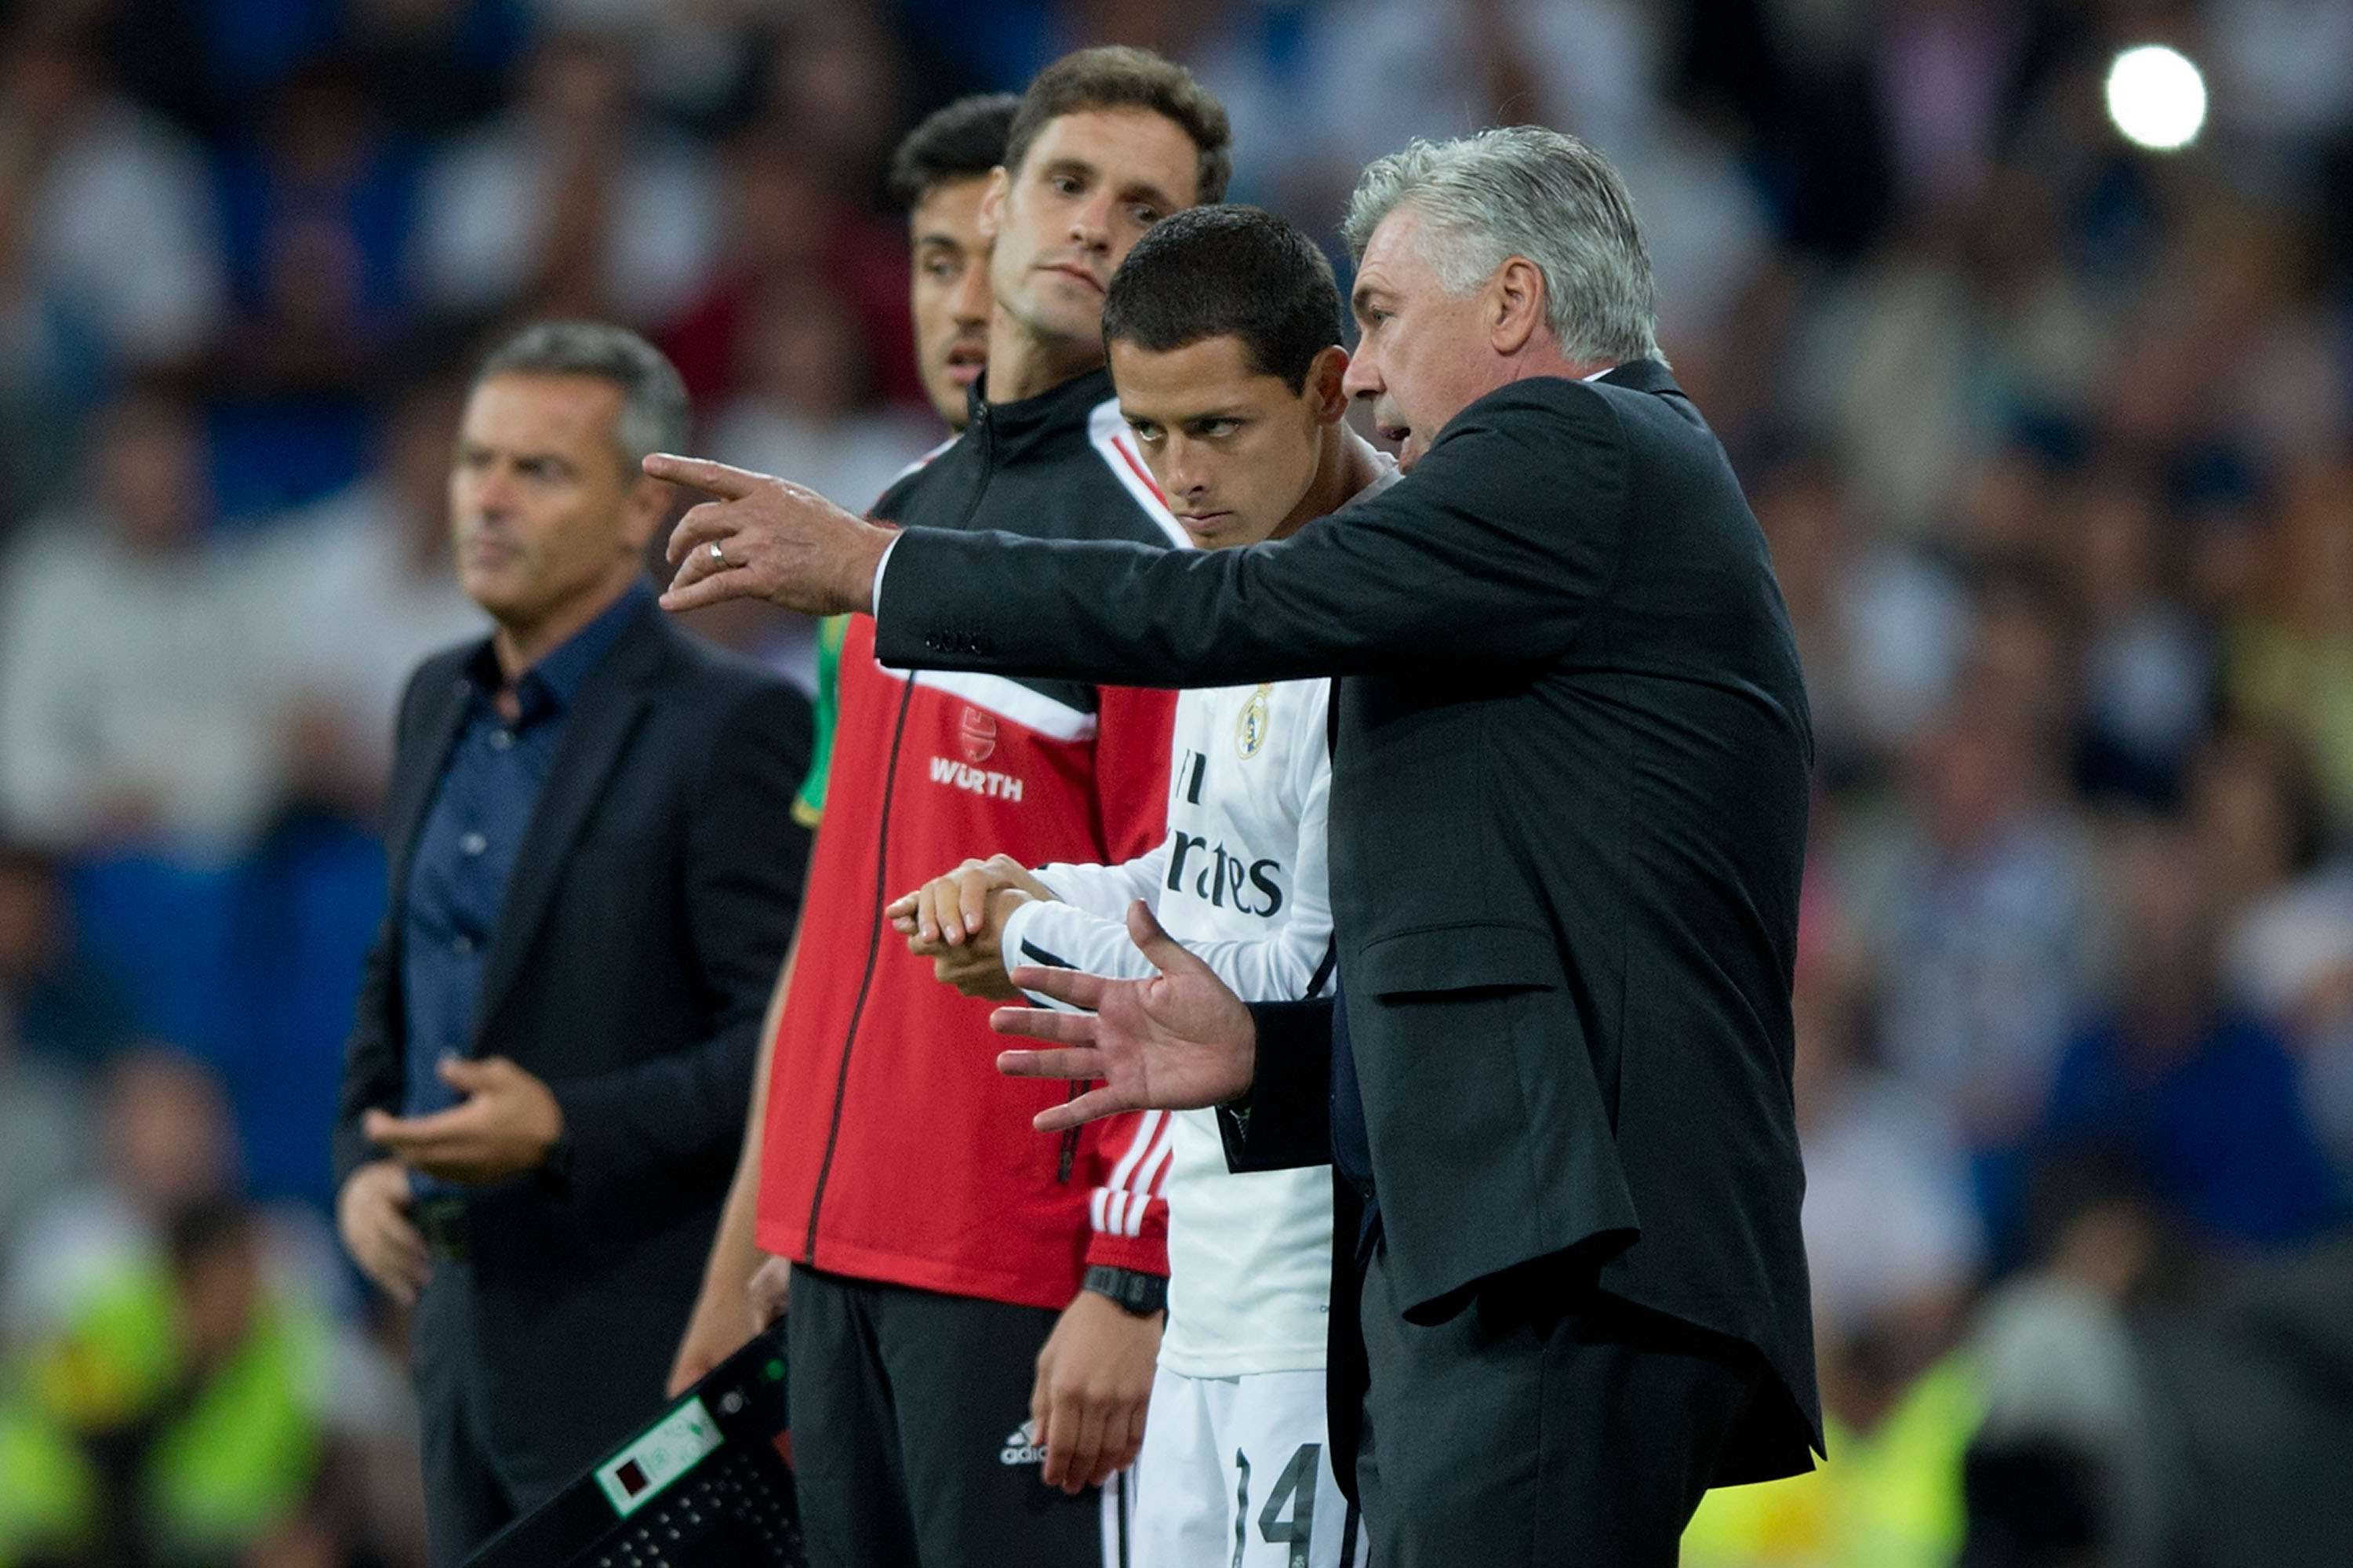 'Chicharito' es el as bajo la manga de Ancelotti. Foto: Getty Images